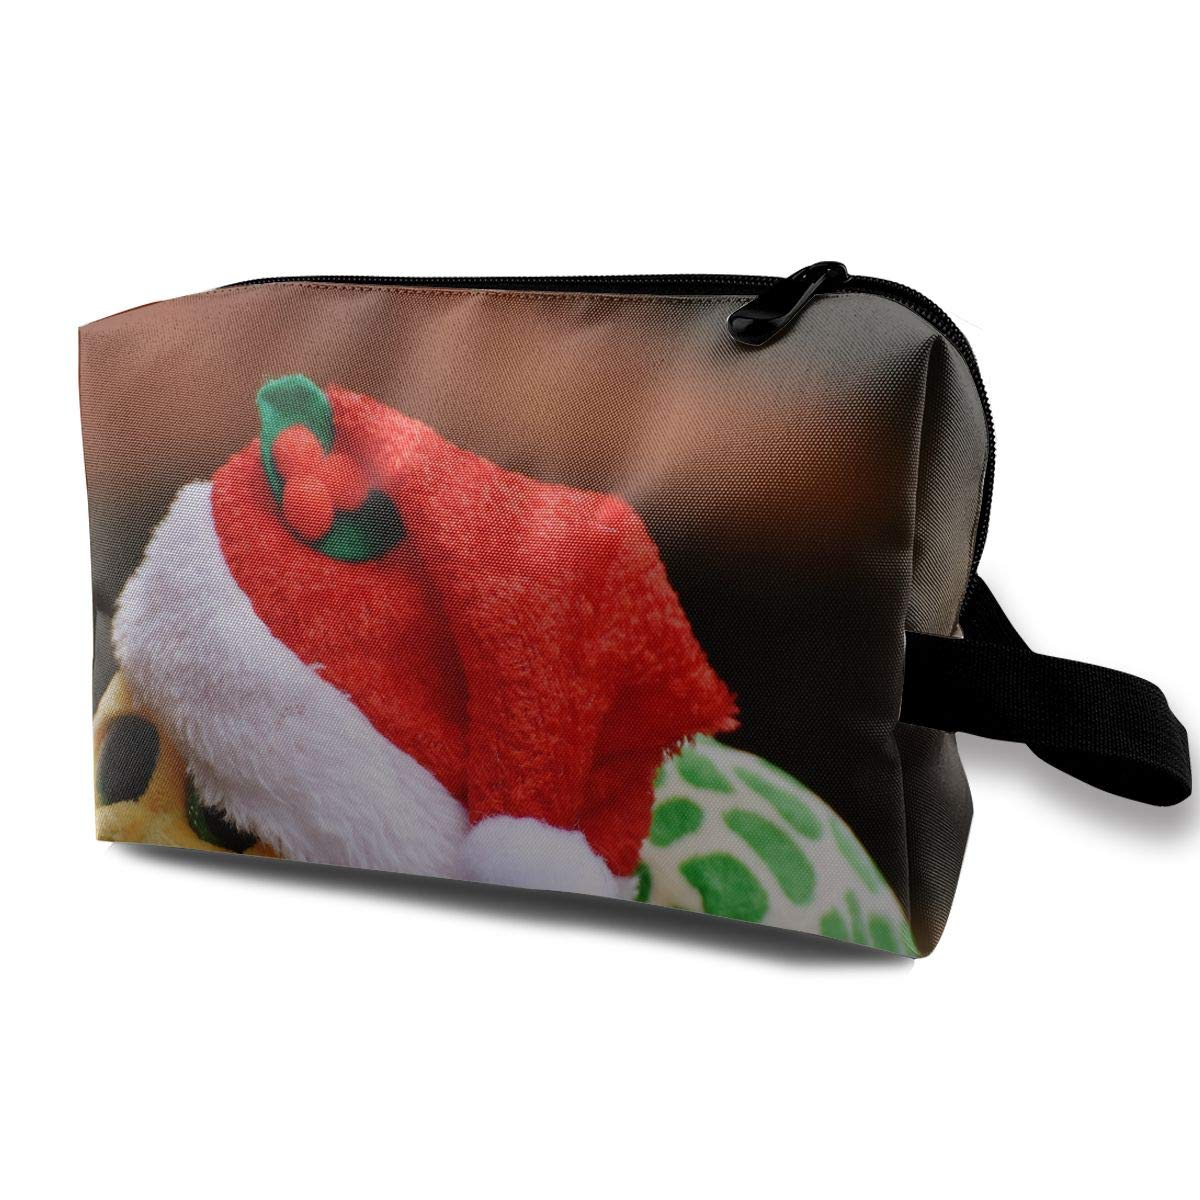 Cute Christmas Hat Plush Toy Turtle Multi-function Travel Makeup Toiletry Coin Bag Case